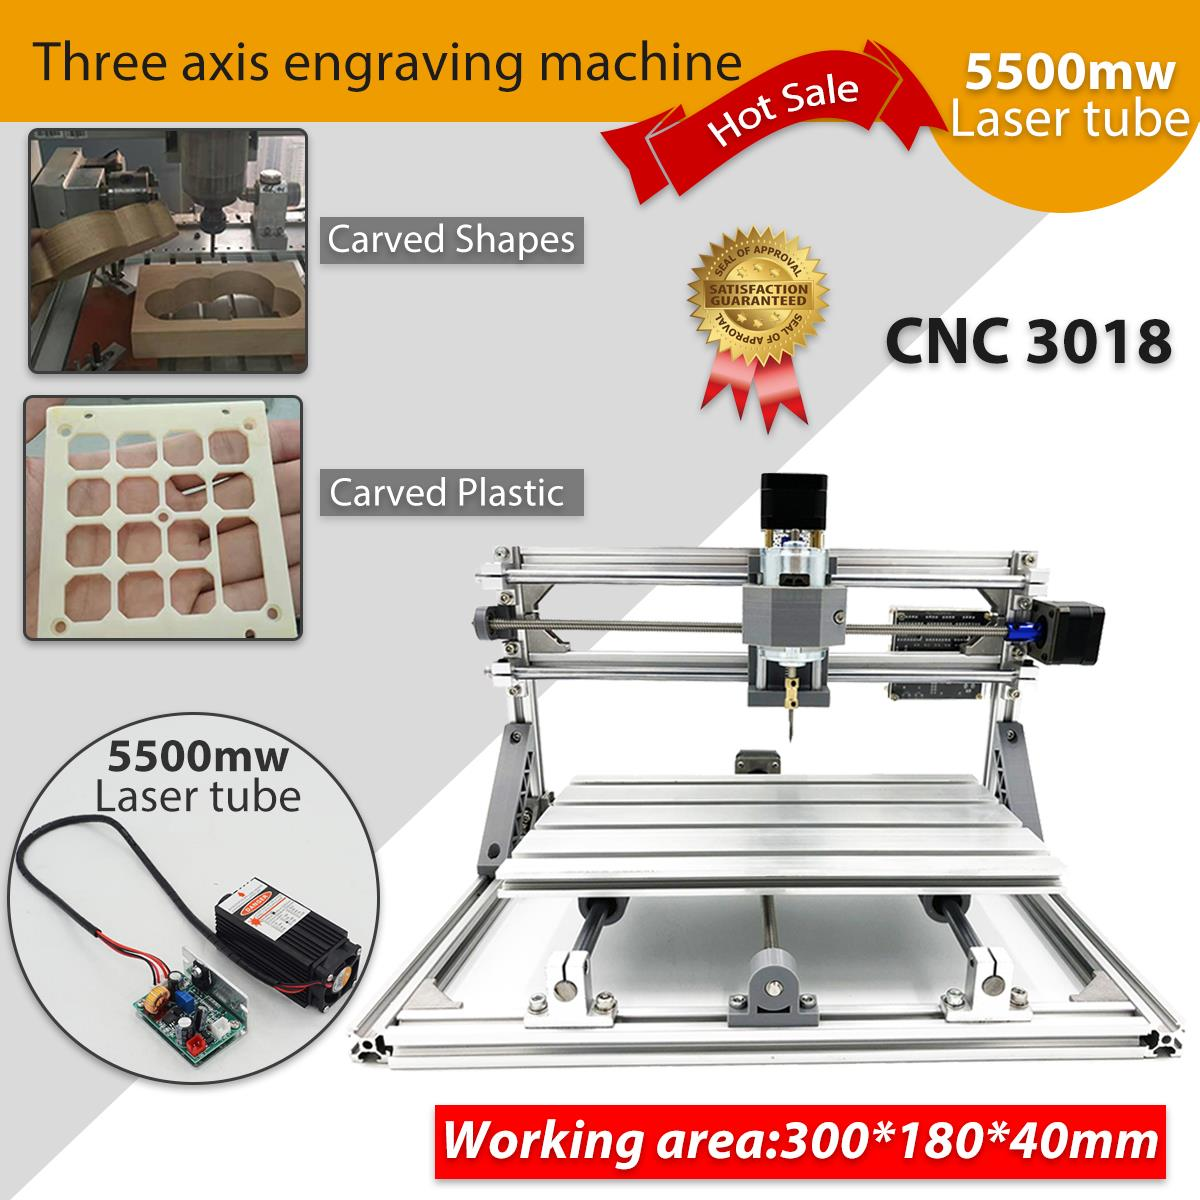 CNC 3018 Mini Engraving Machine 5500mw/2500mw Laser PCB Milling Machine Wood Carving Machine GRBL Control CNC Router Kit disassembled pack mini cnc 3018 pro 500mw laser cnc engraving wood carving machine mini cnc router with grbl control l10010